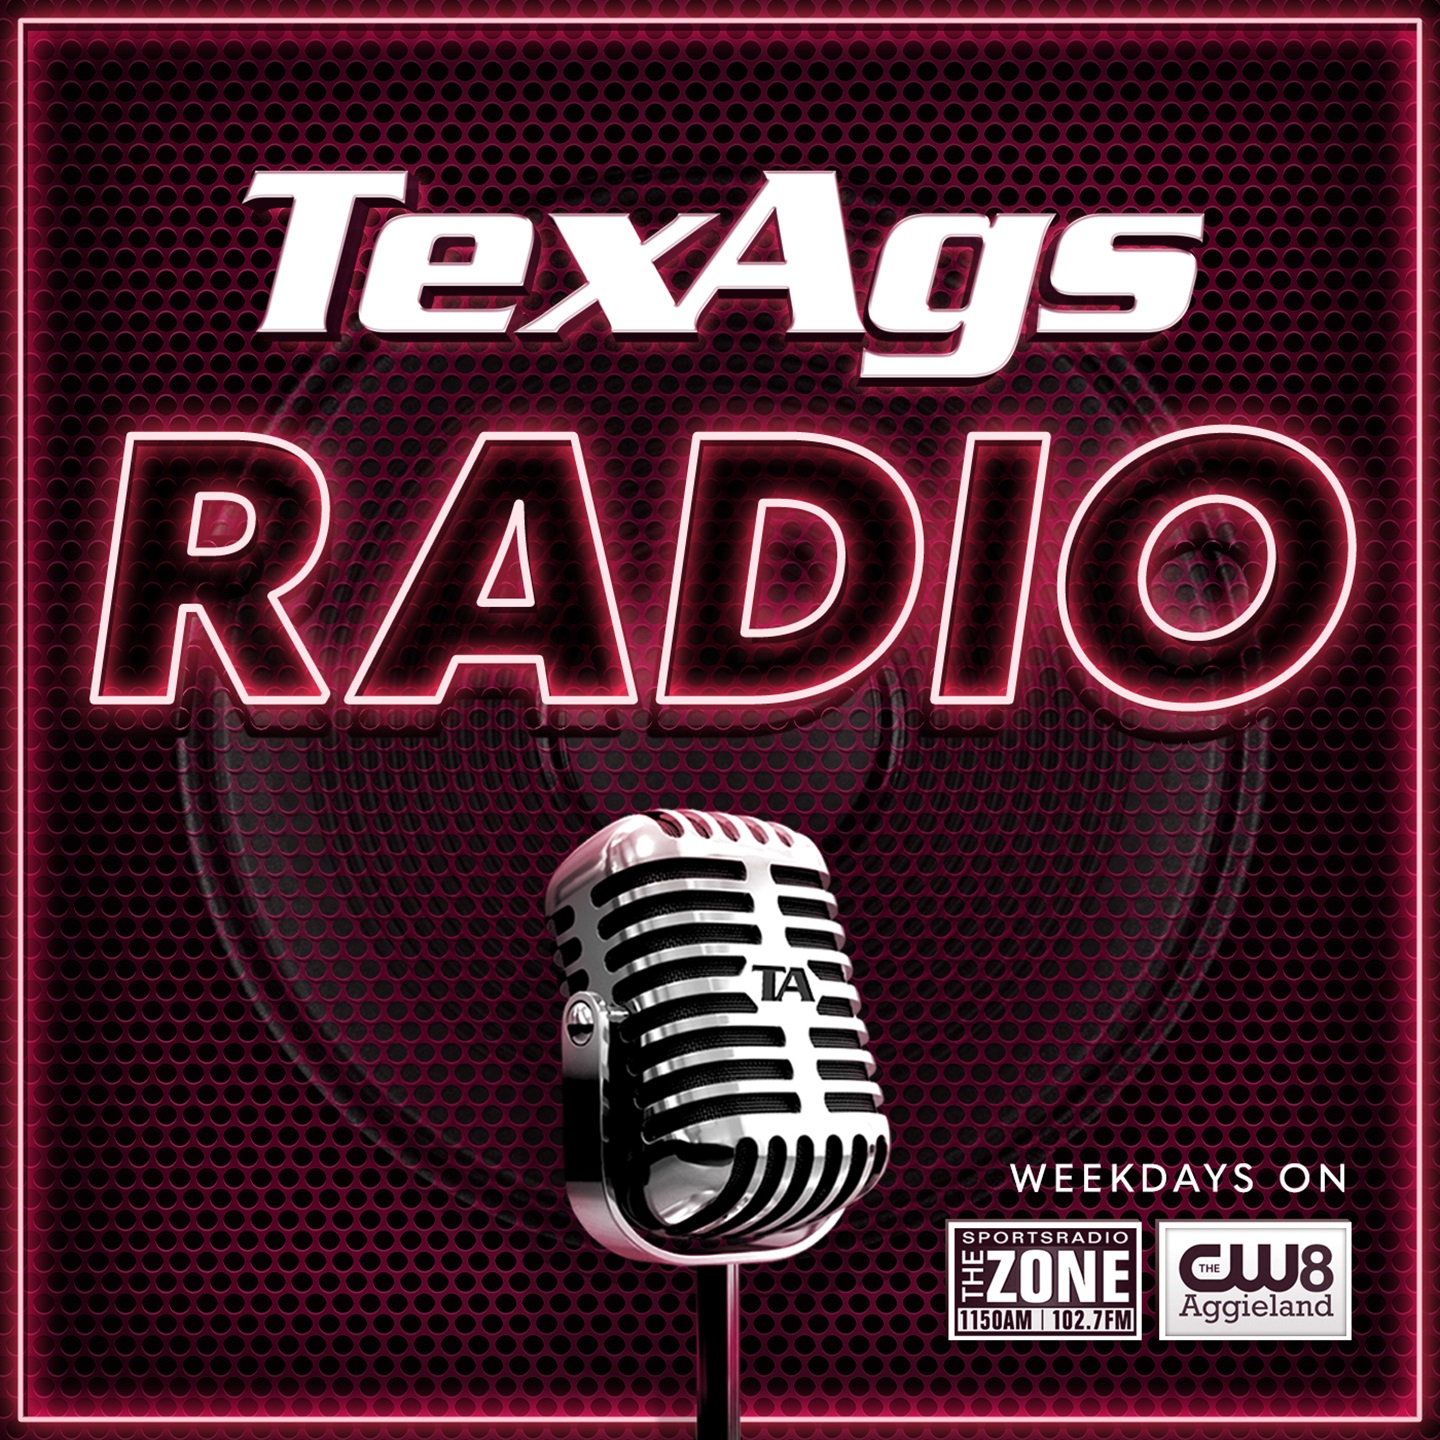 TexAgs Radio: Friday (9/13) full show